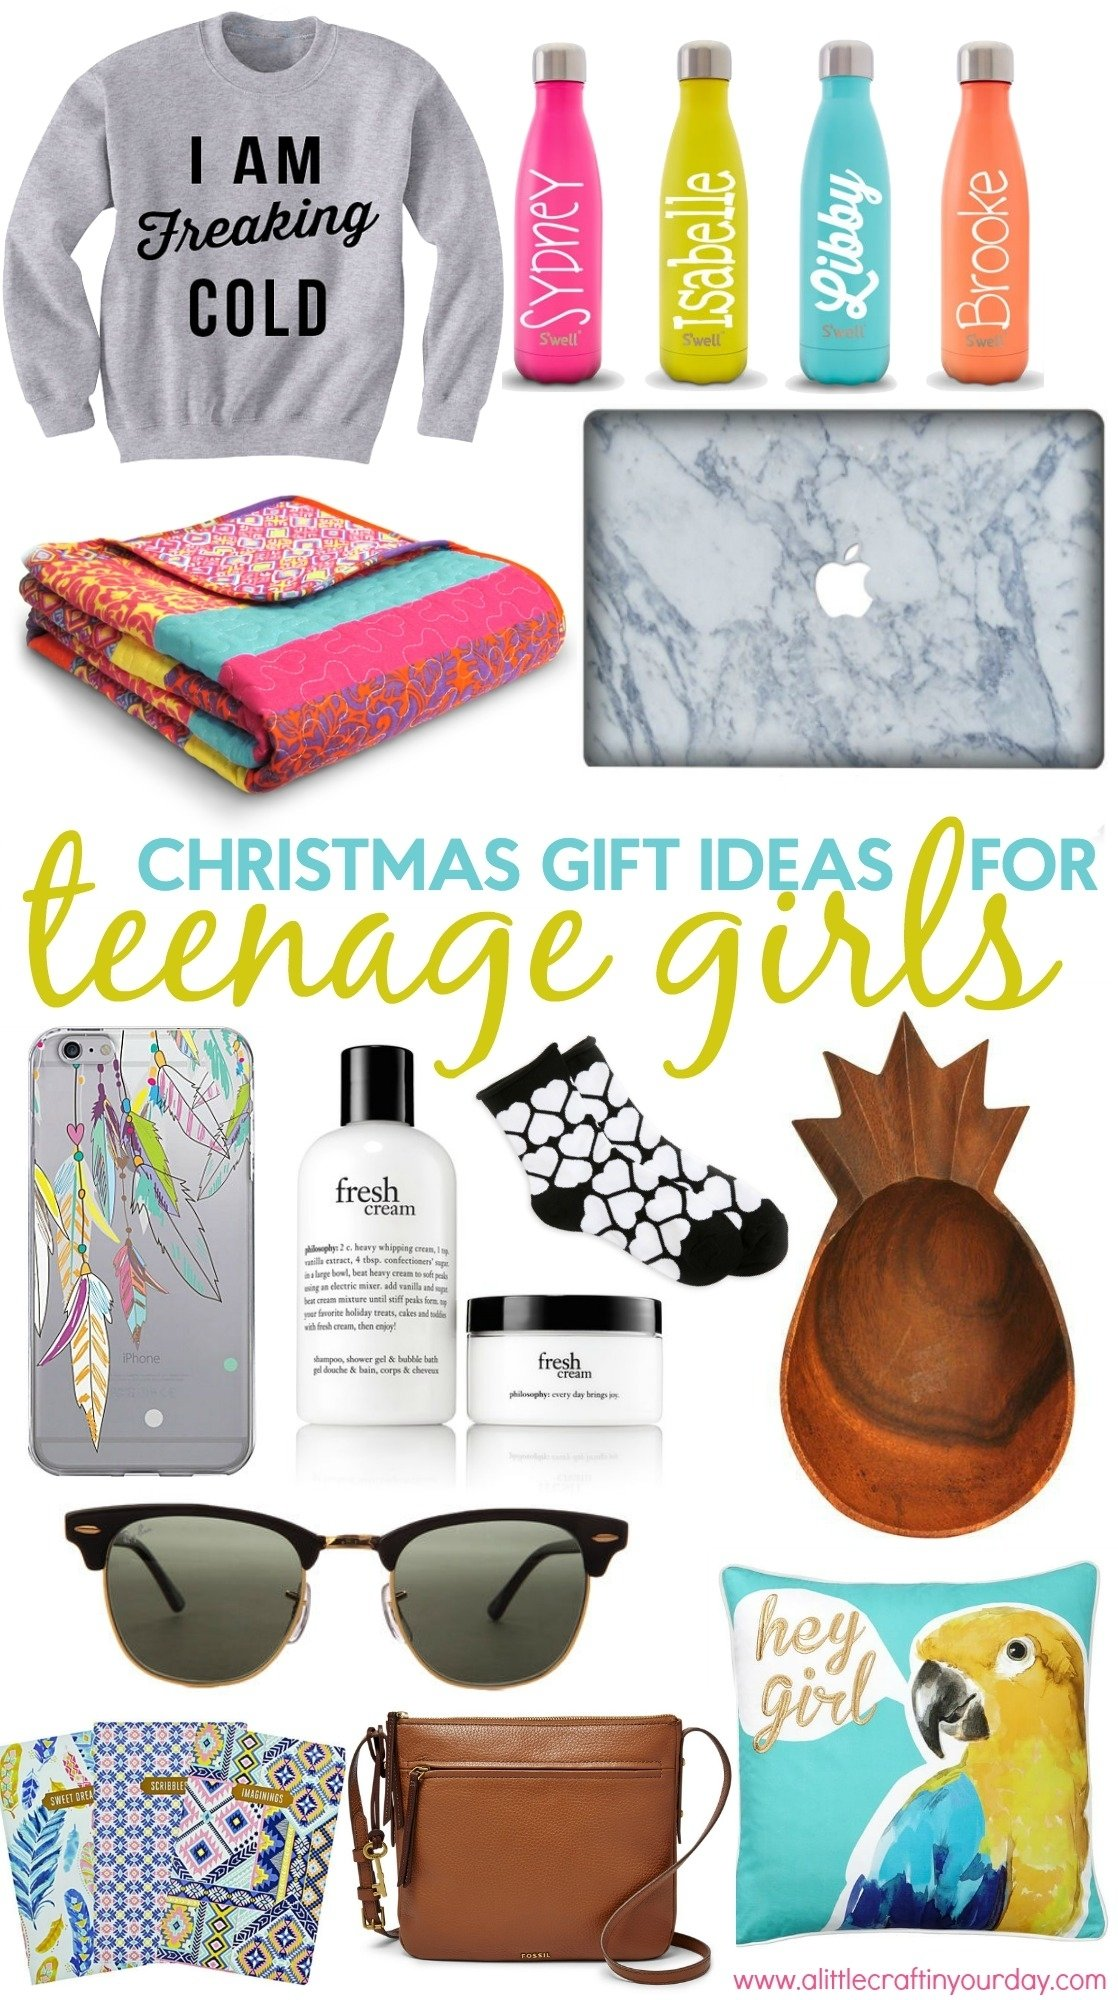 10 Awesome Gift Ideas For Teenage Girls christmas gift ideas for teen girls a little craft in your day 3